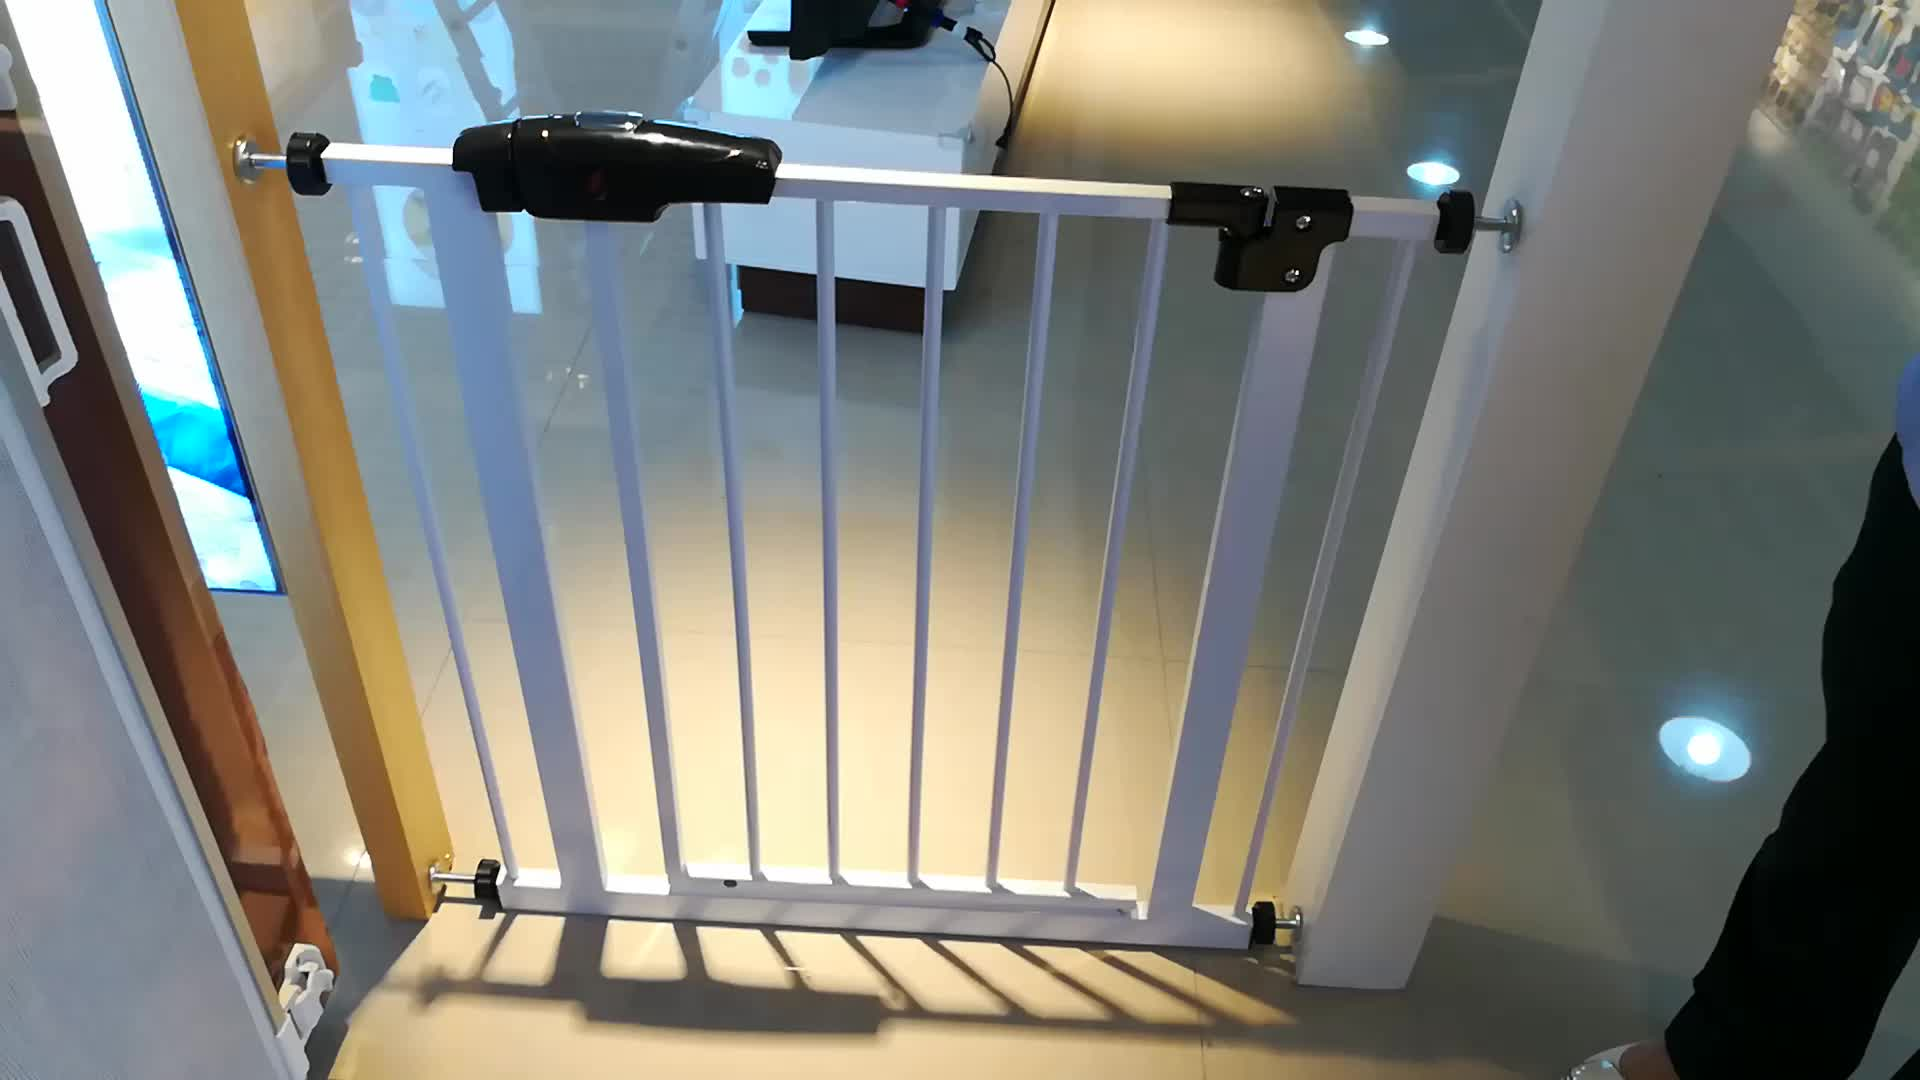 Wood Adjustable Baby Door Barriers Safety Gate Expandable